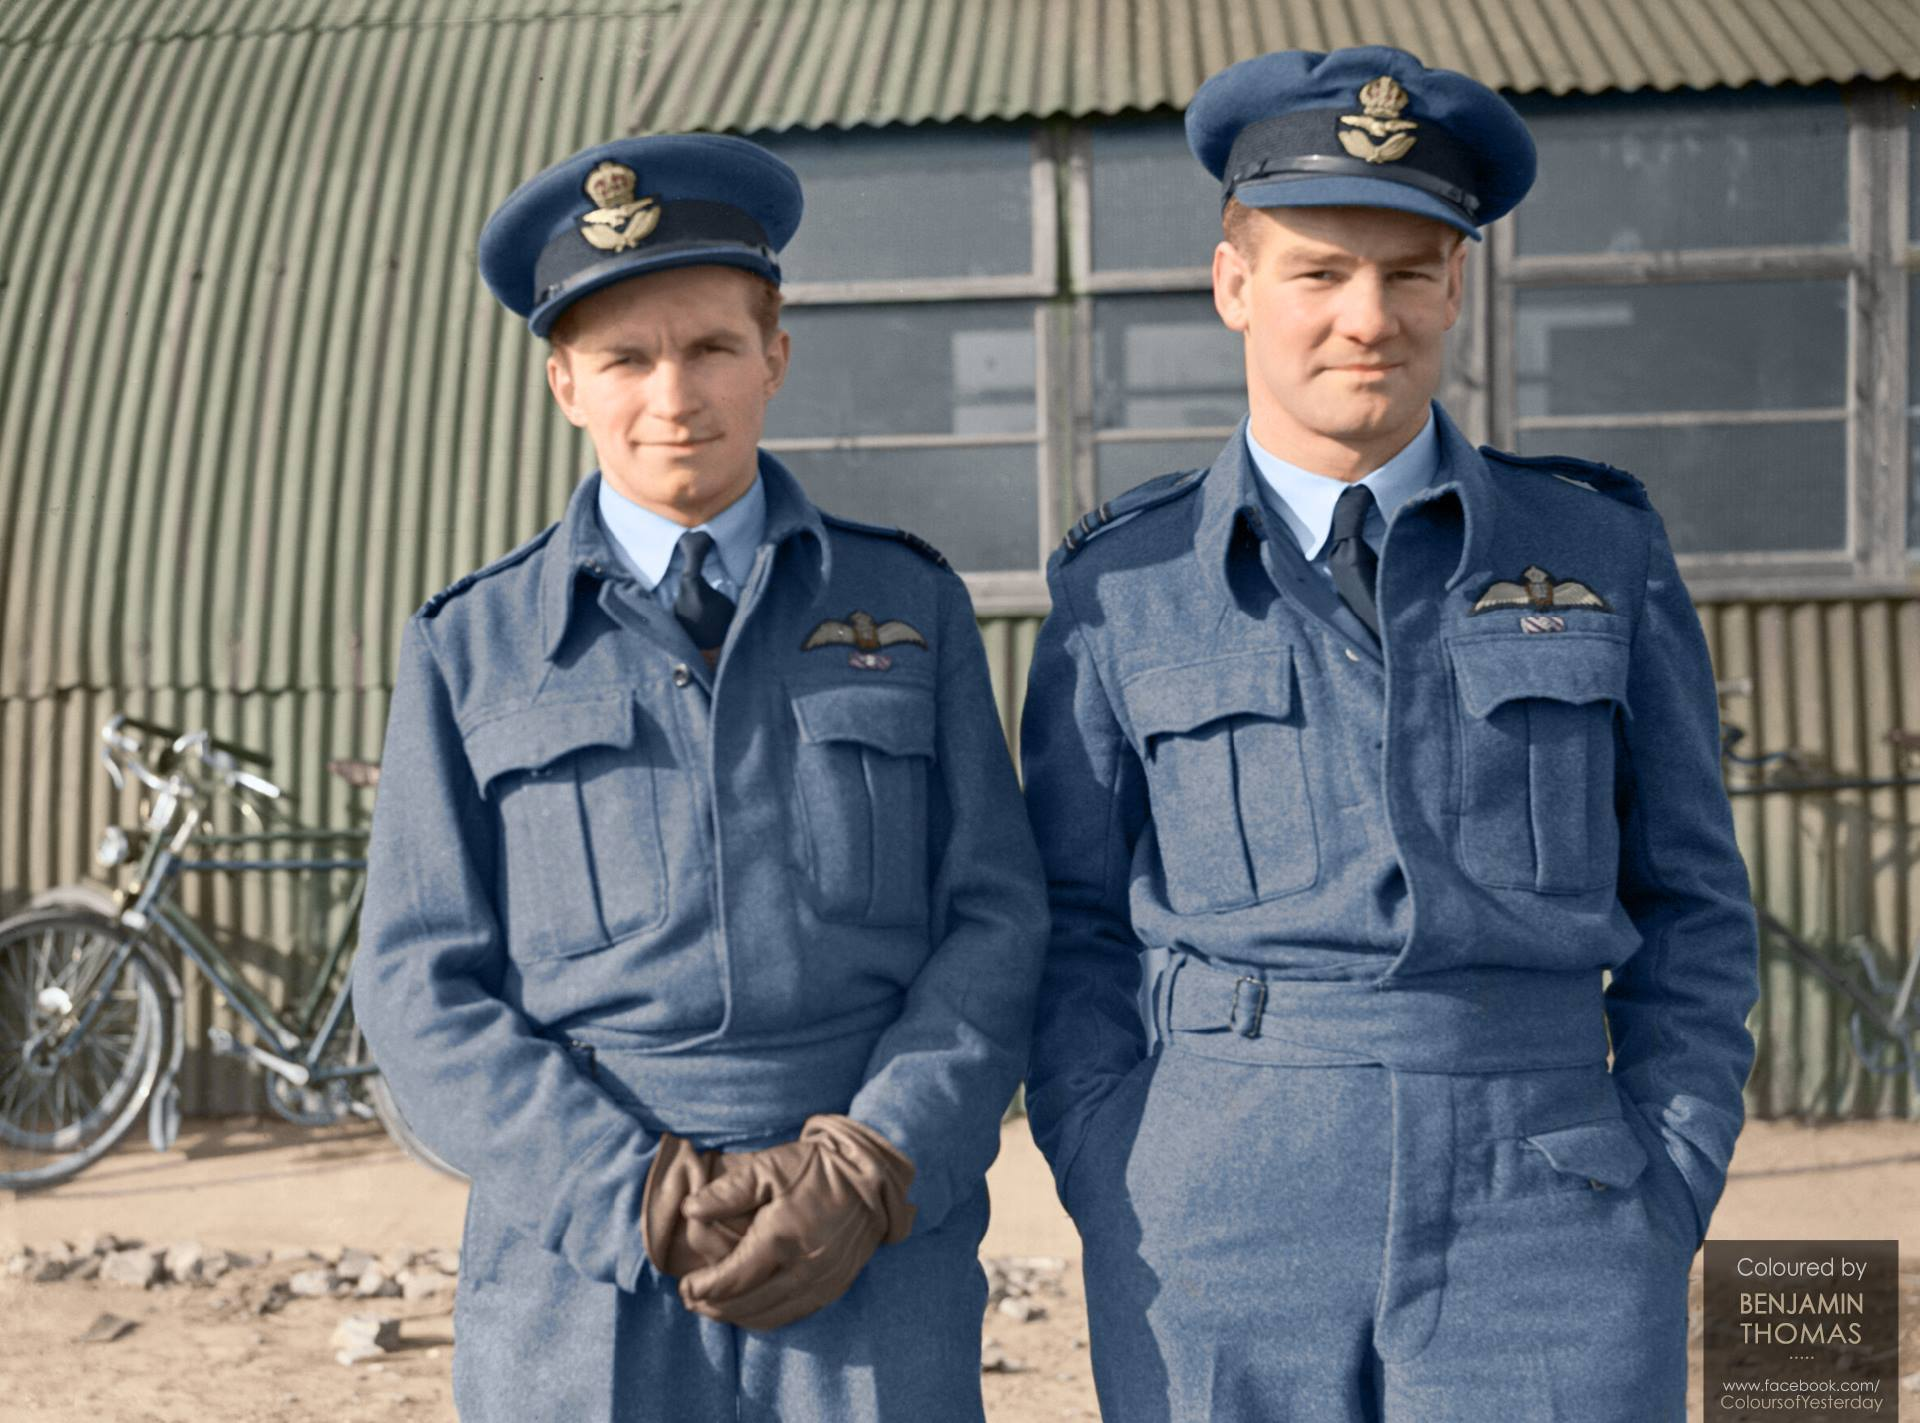 Wing Commander Alan Deere (1917-1995; right) with Squadron Leader Denis Crowley-Milling DSO DFC (1919-1996; left), 1940. Coloured by www.facebook.com/coloursofyesterday